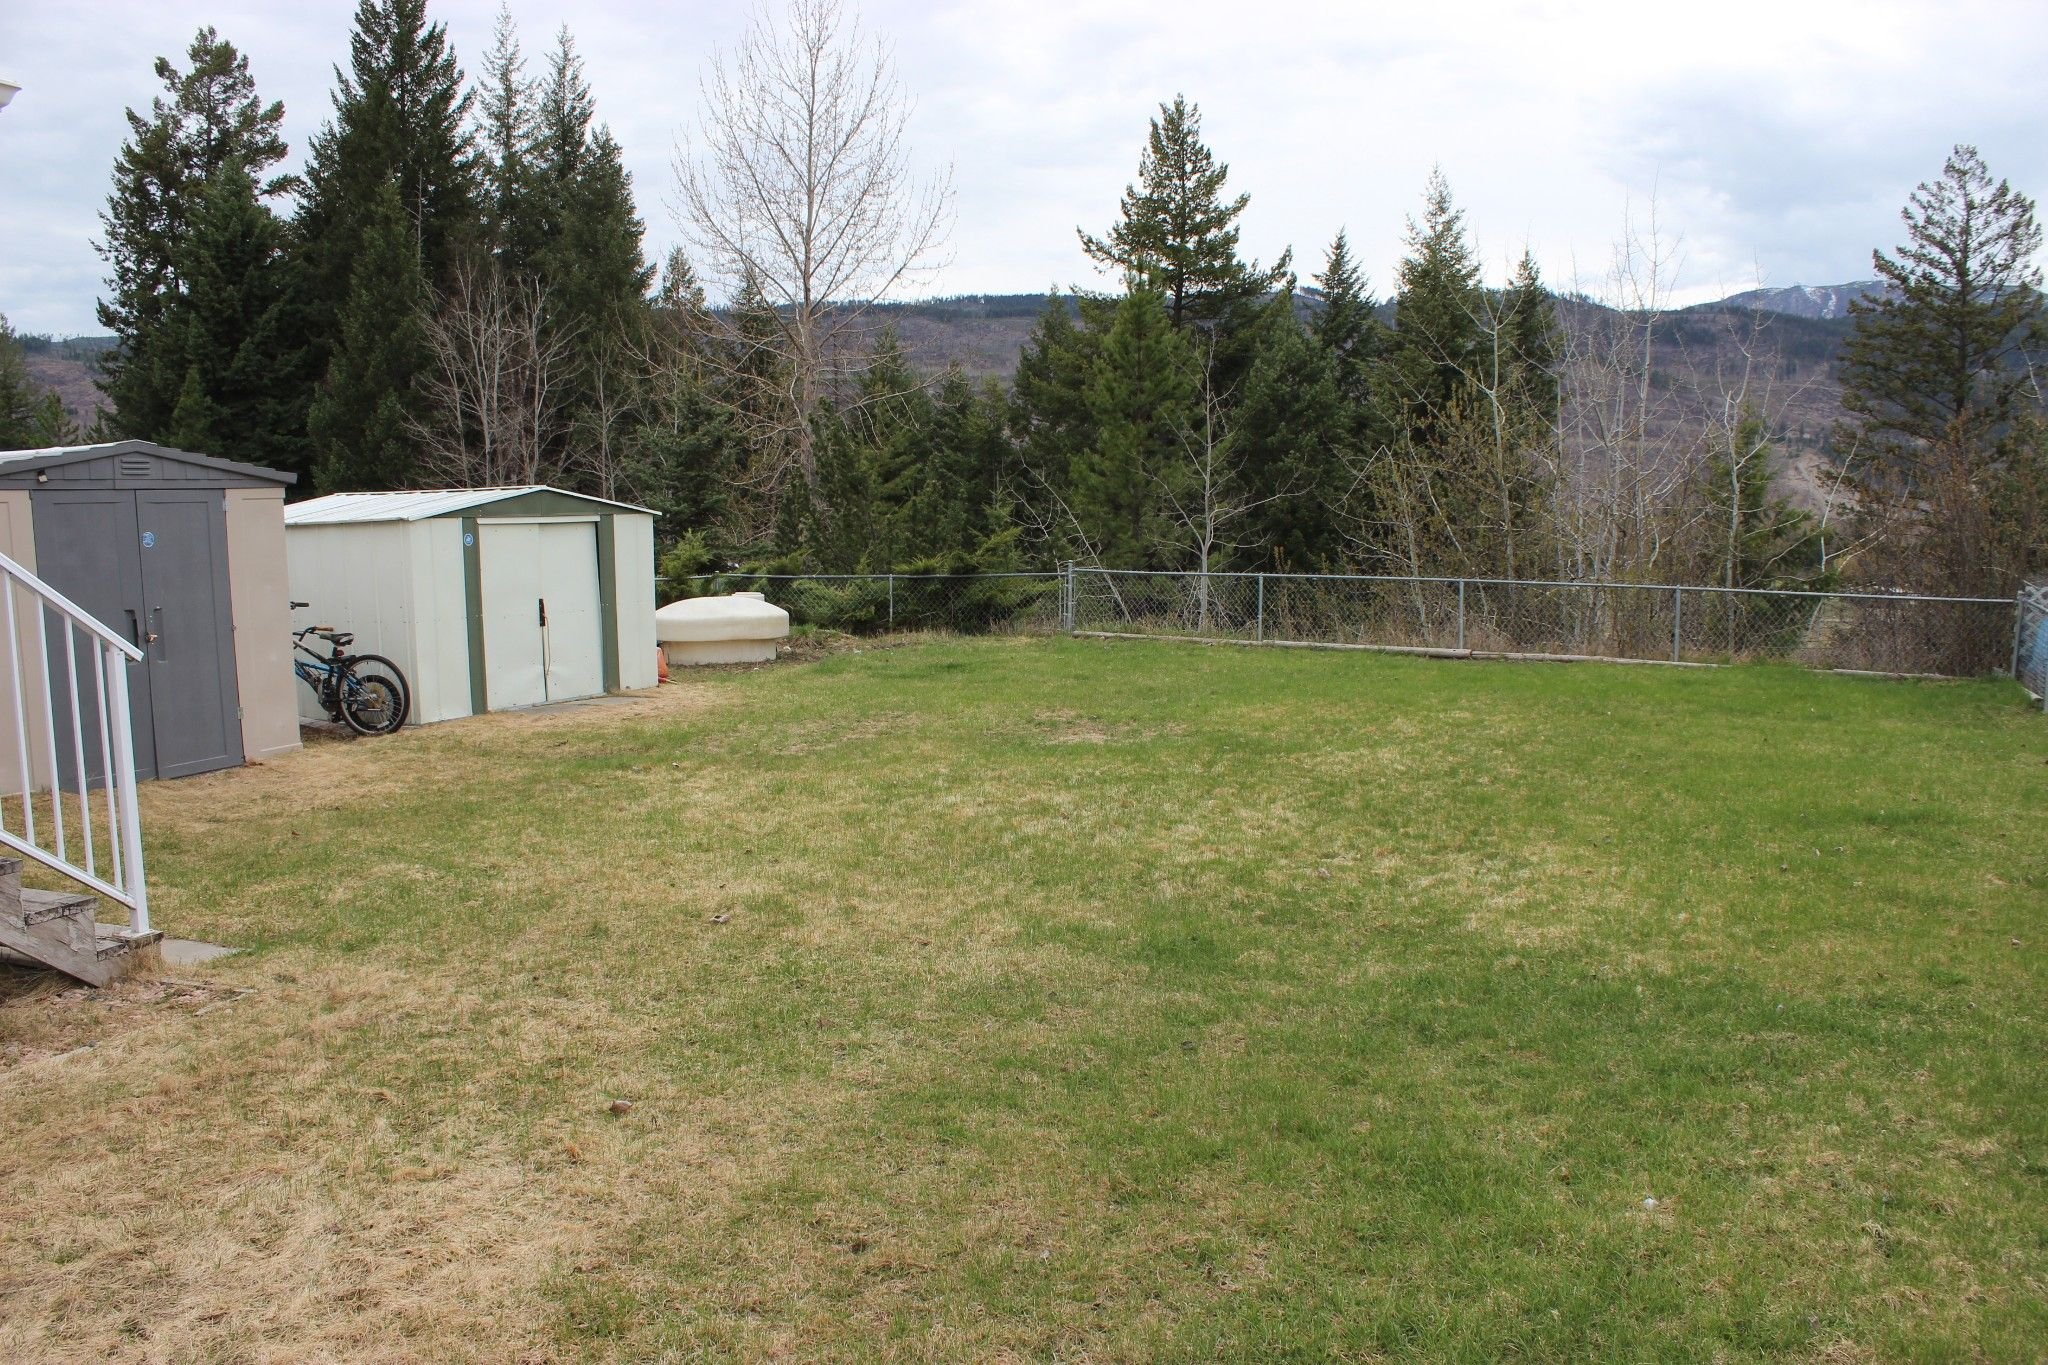 Photo 13: Photos: 31 4510 Power Road: Barriere Manufactured Home for sale (Kamloops)  : MLS®# 156187